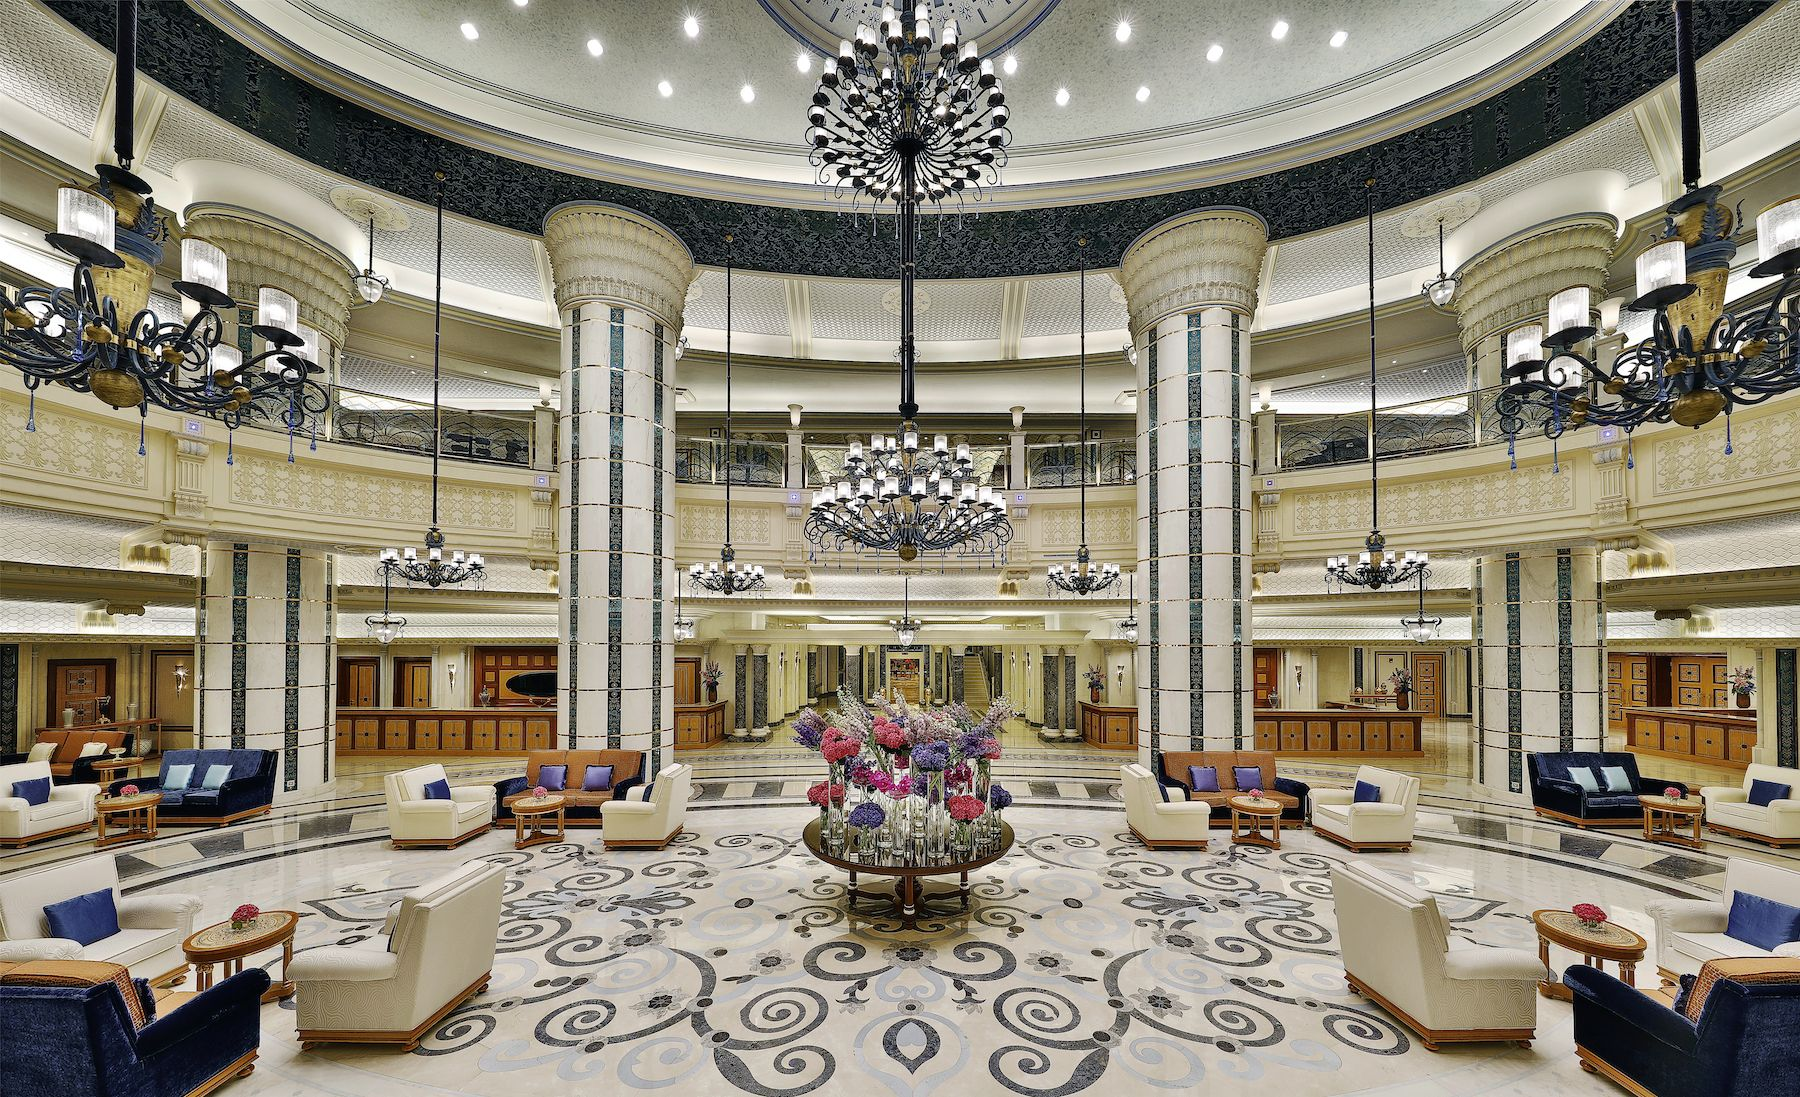 Arrive To A Royal Welcome In The Palace Inspired Lobby Of The Ritz Carlton Jeddah Hotel Jeddah Ritz Carlton